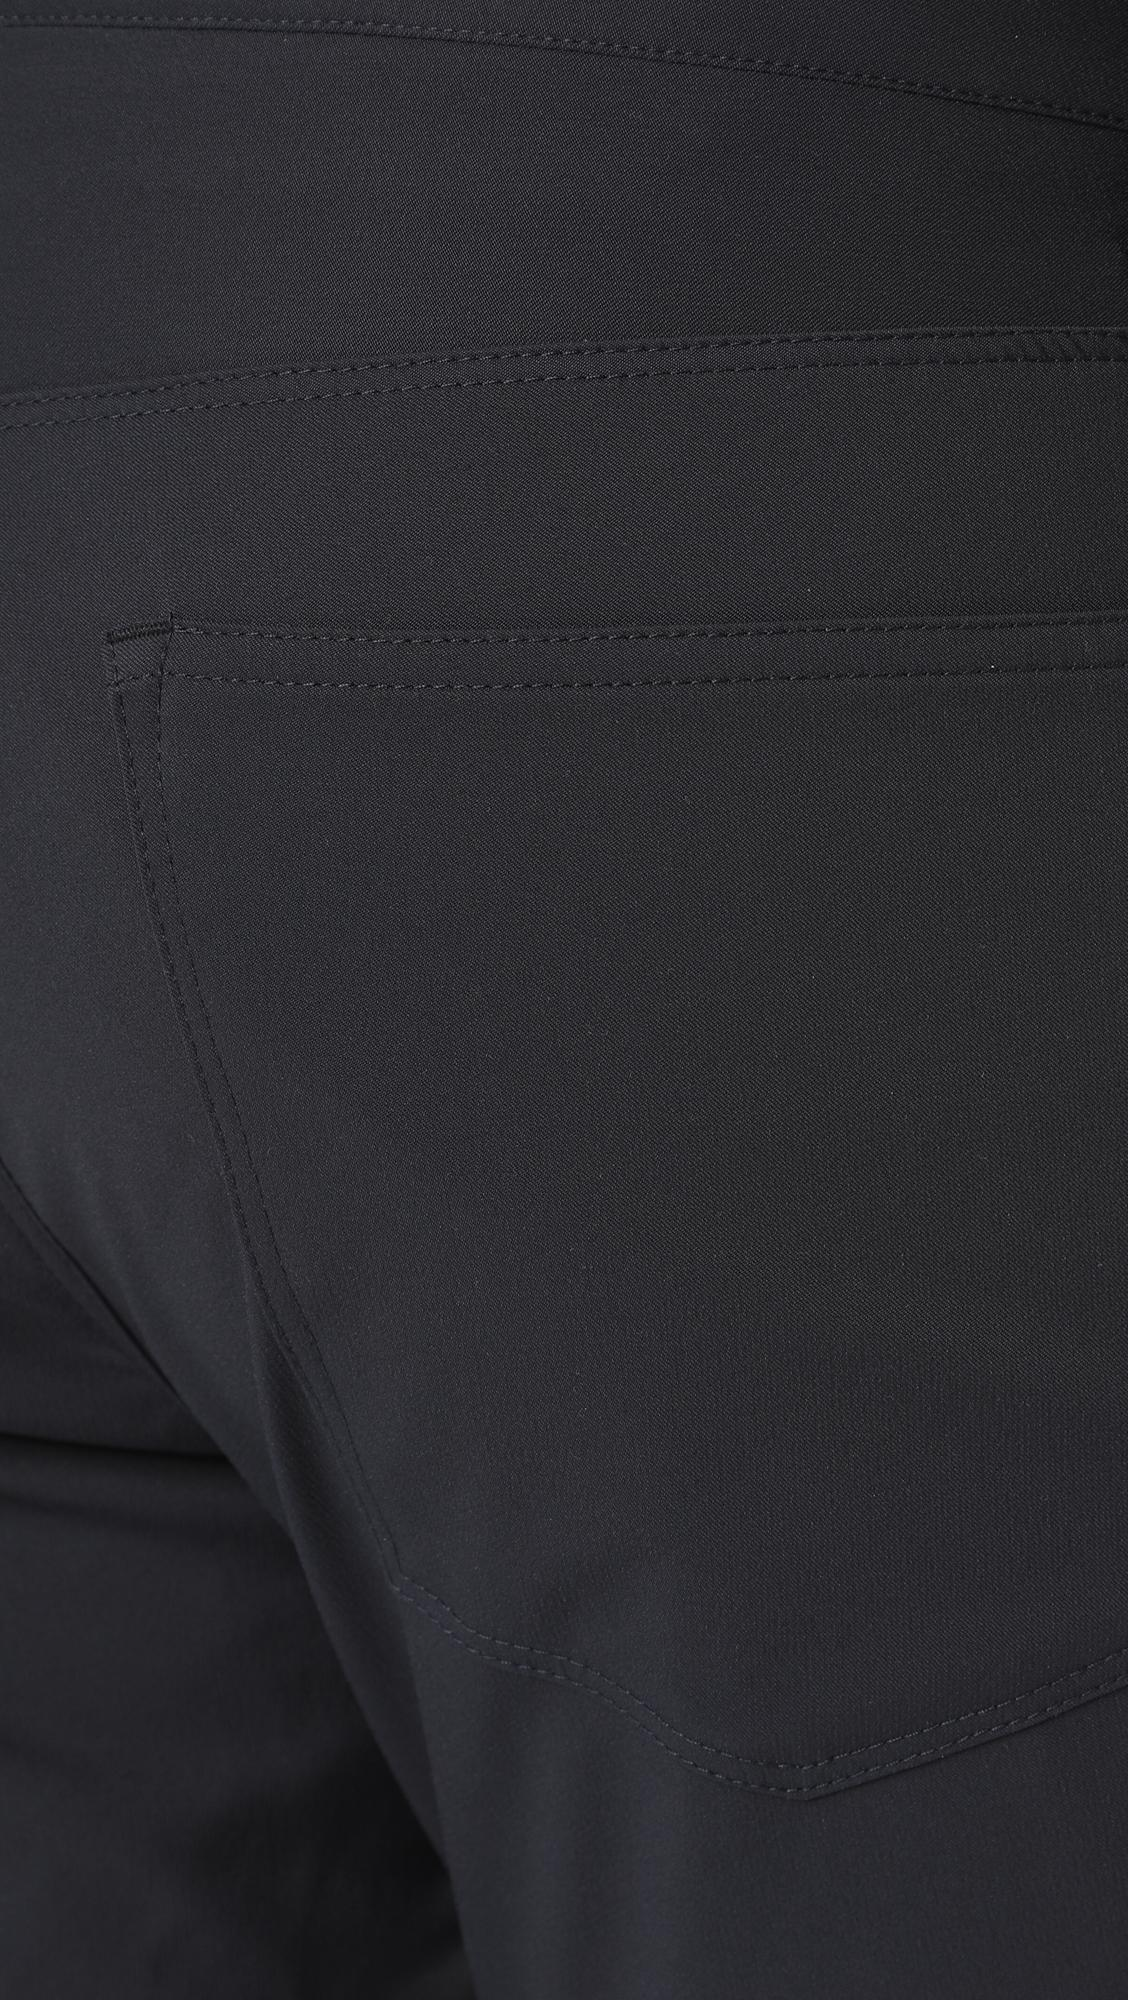 Theory Denim Neoteric 5 Pocket Pants in Navy (Blue) for Men